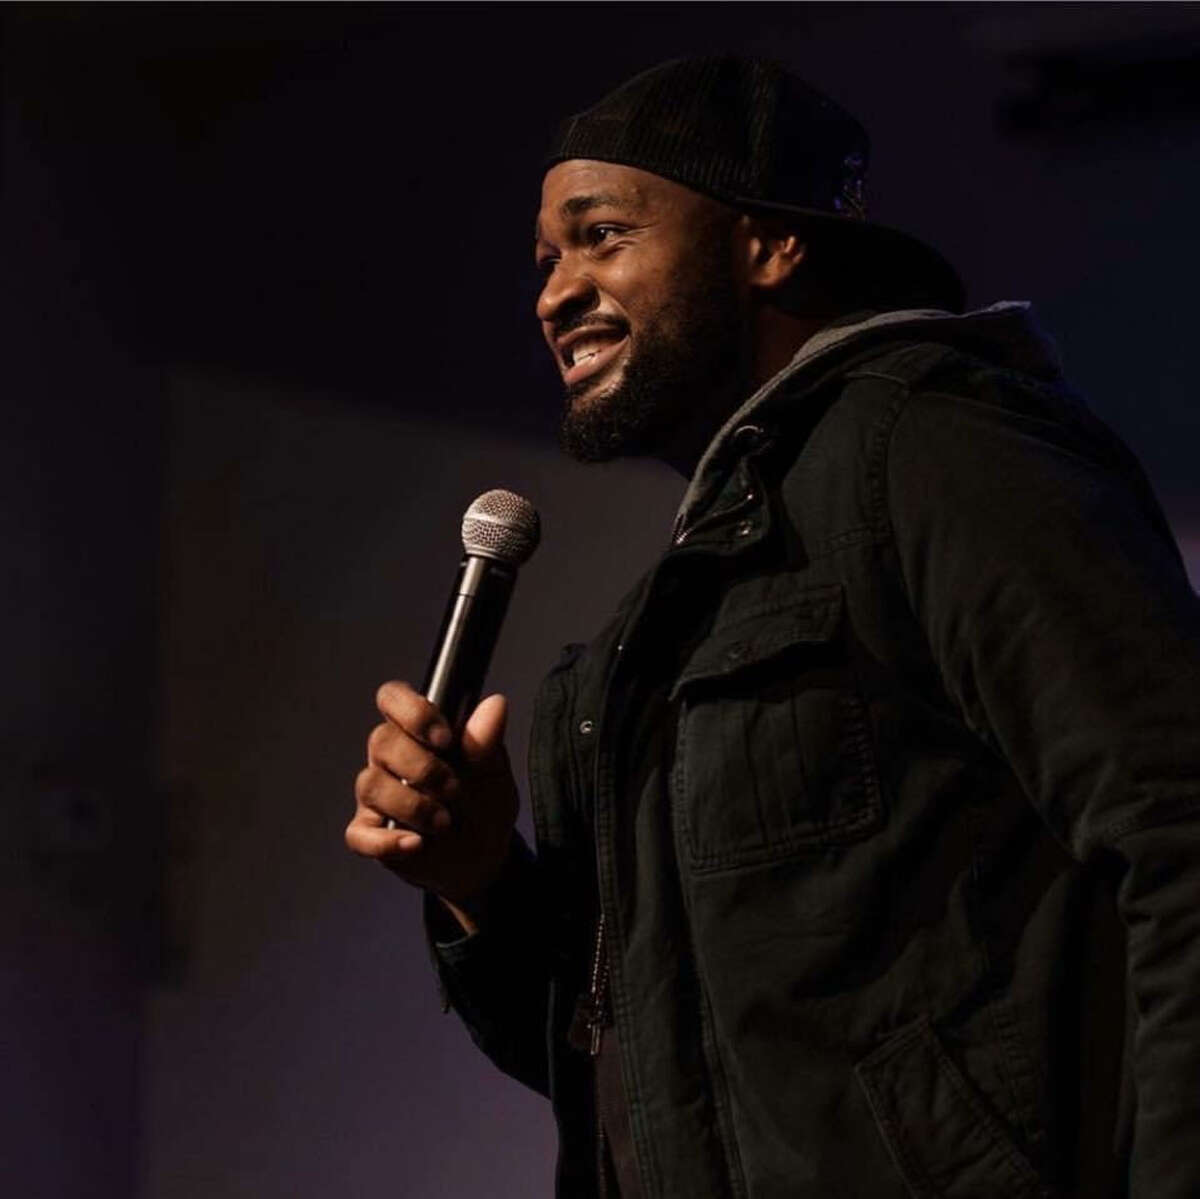 Ogu said he's been influenced by the works of legendary comedians like Martin Lawrence and Jim Carrey.